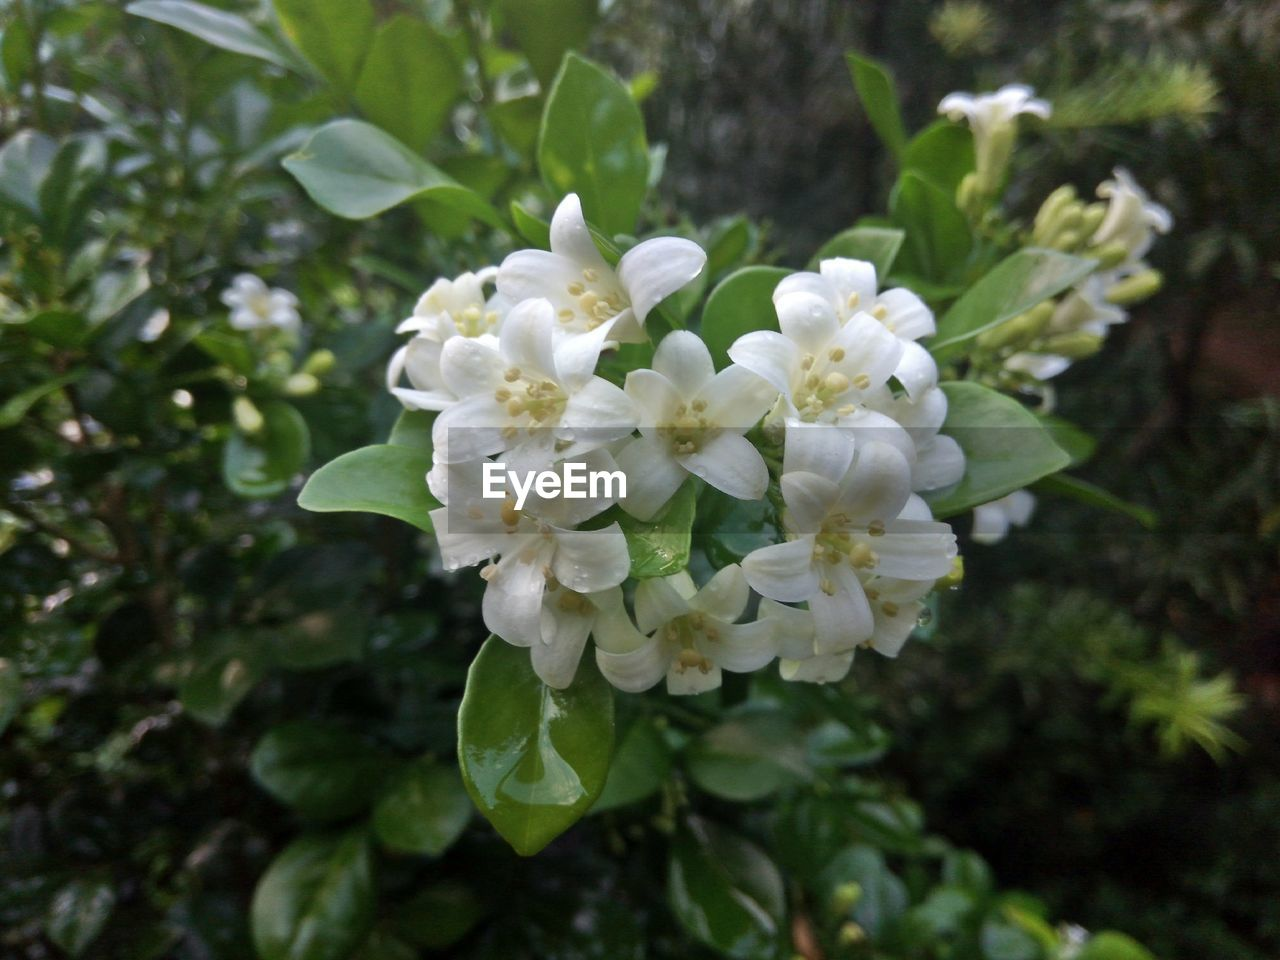 flower, growth, nature, blossom, delicate, green, spring, fragility, plant, blooming, freshness, no people, beauty in nature, tree, flower head, outdoors, day, close-up